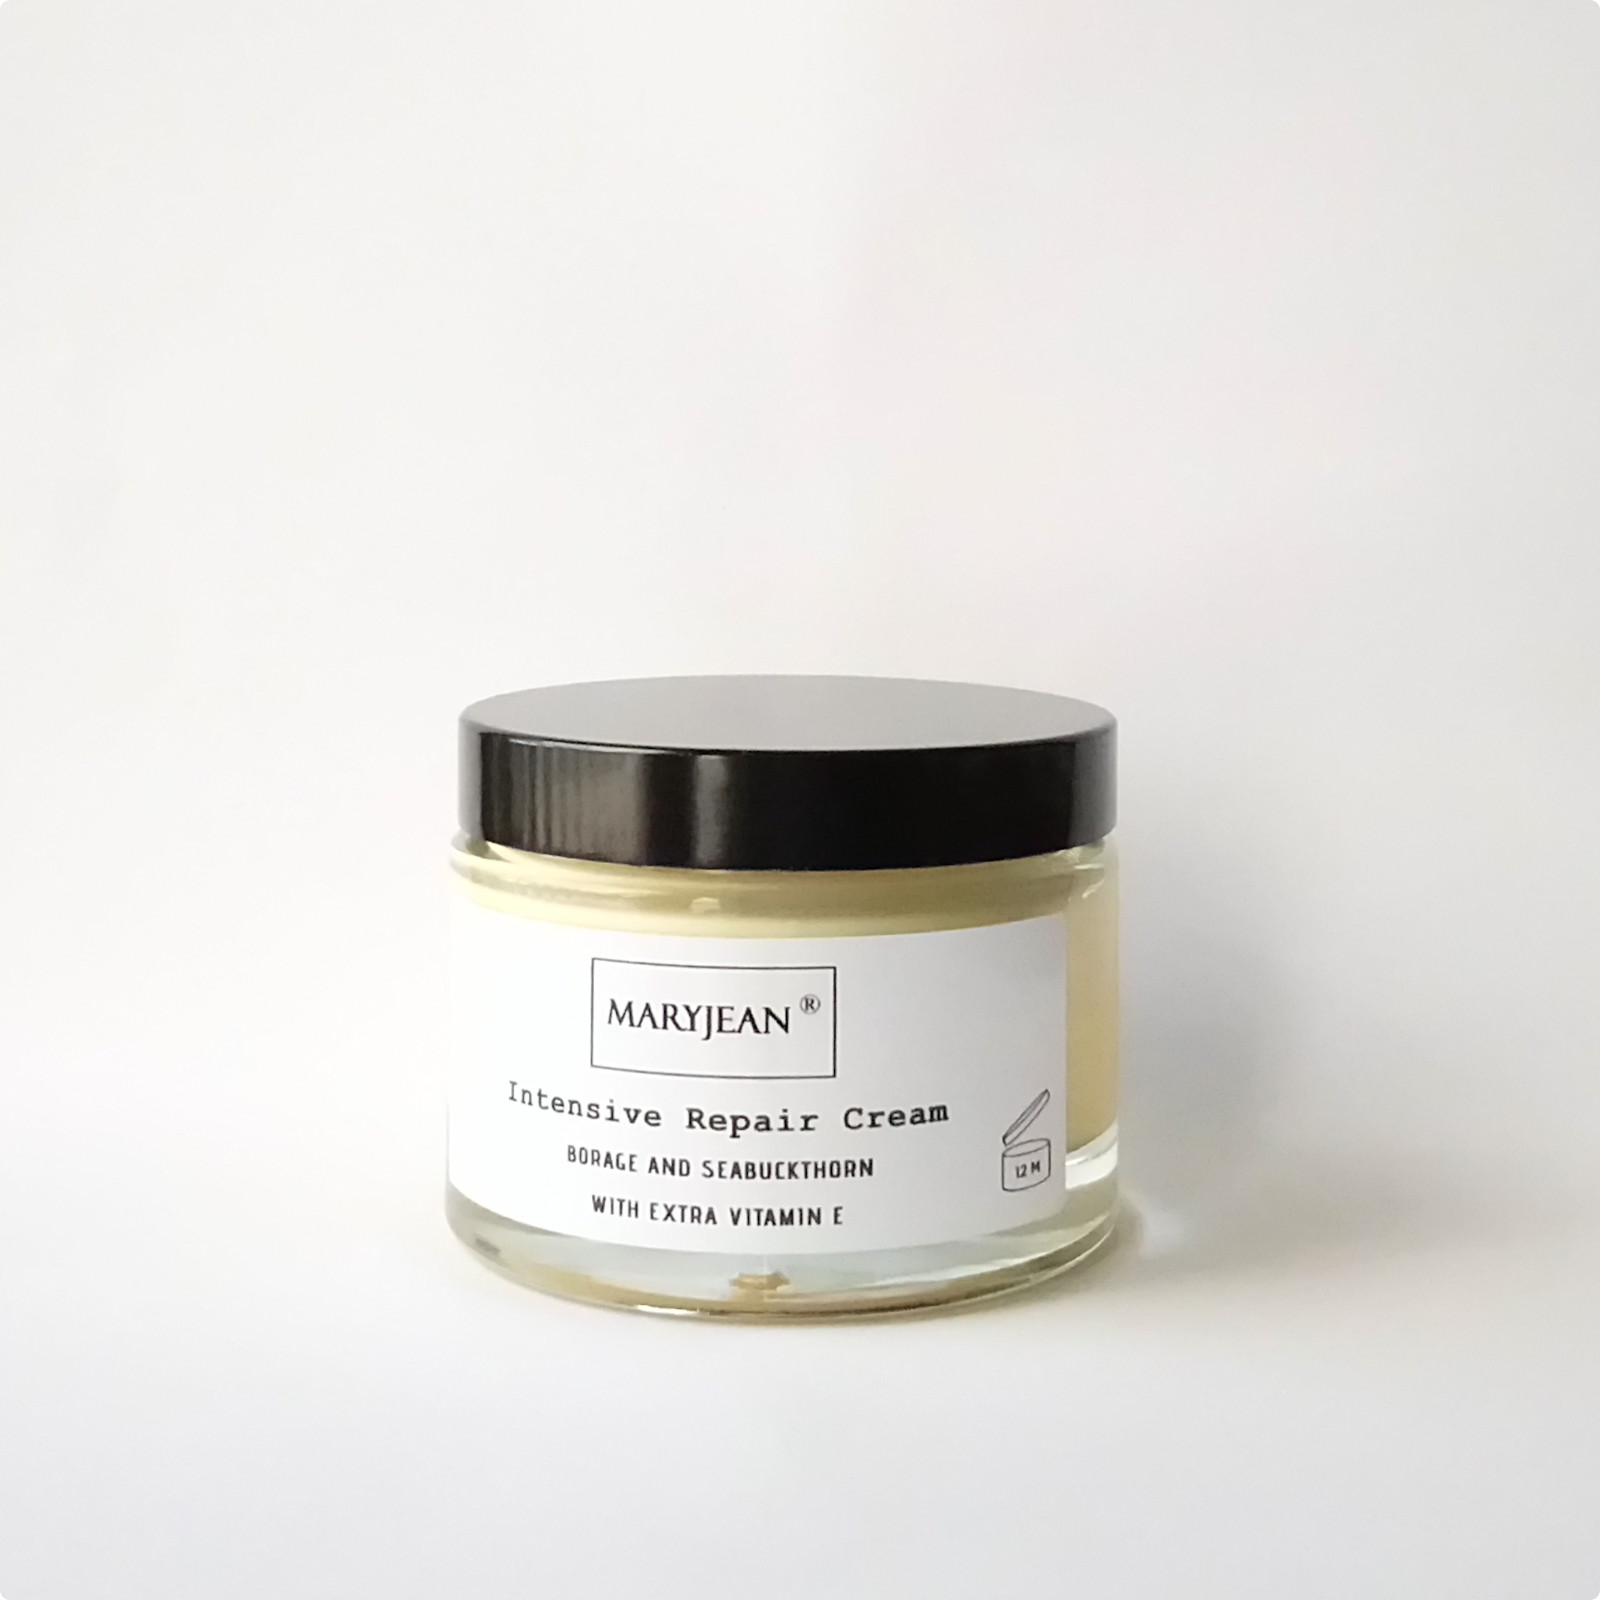 Best care for your hands and body for damaged skin in need of serious care and attention with aromatherapy Apricot and Hazel oils blended expertly with Sea Buckthorn and Borage botanical oils reduces wrinkles and signs of ageing of skin cells Hand And Body Intensive Repair Cream With Borage And Seabuckthorn